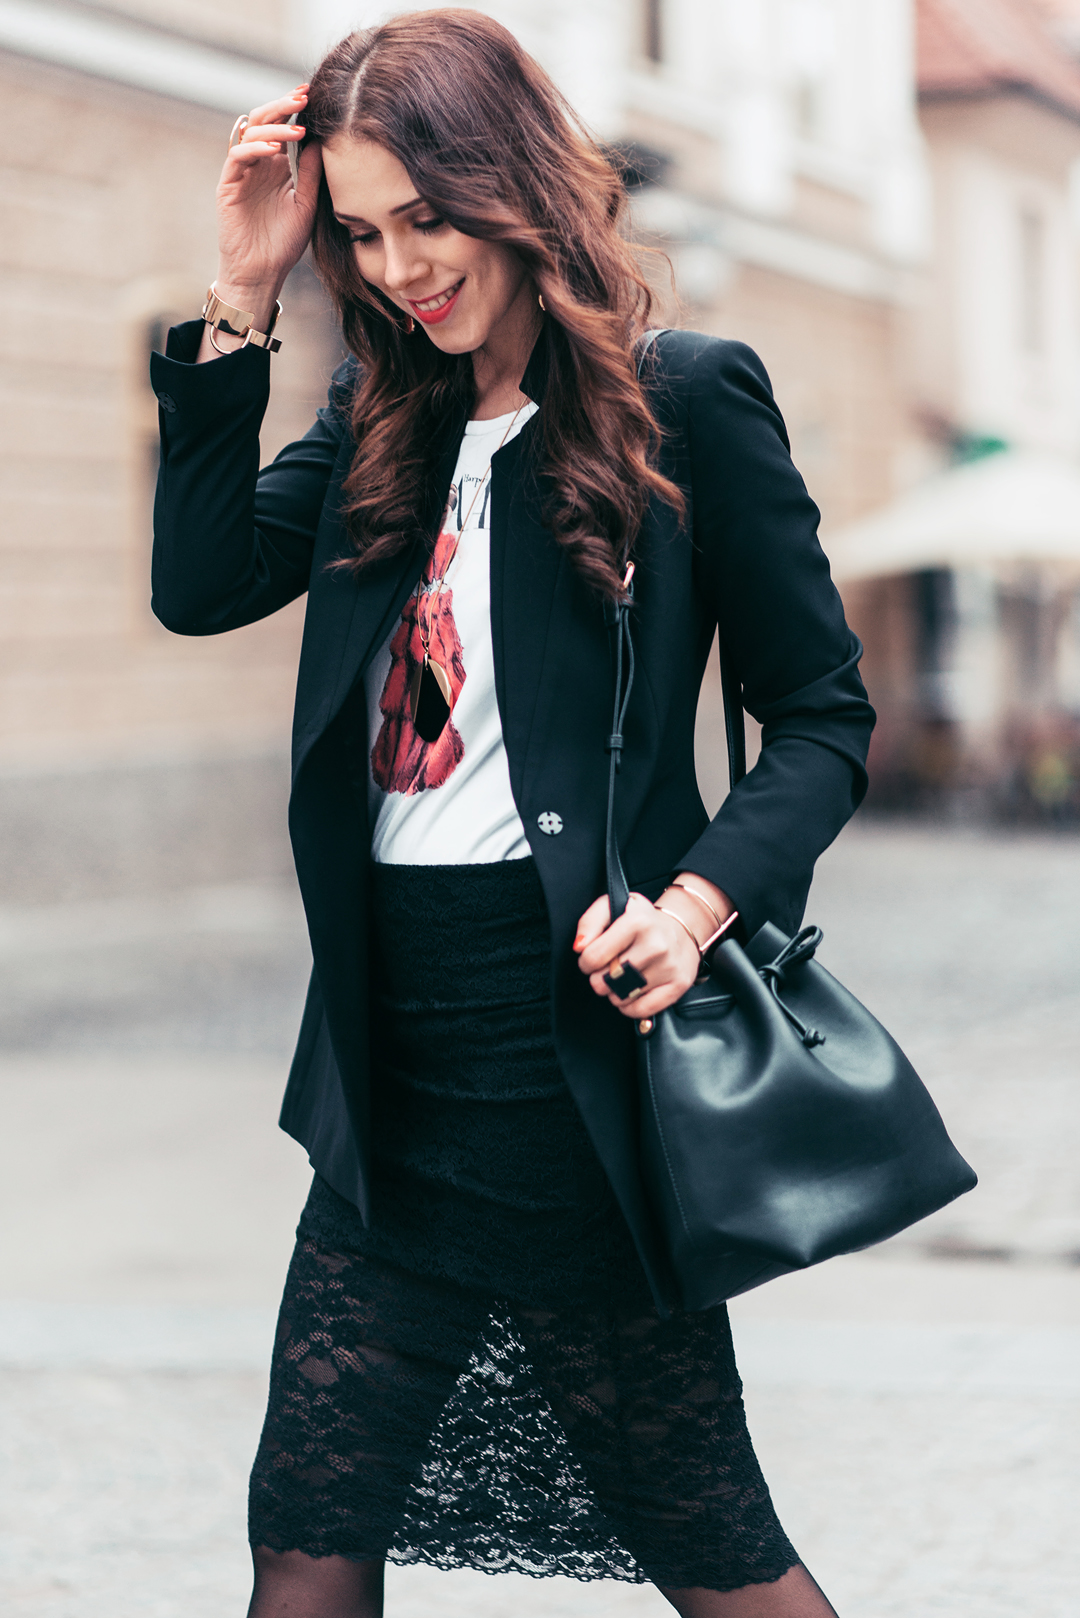 eva-ahacevcic_love-eva_ootd_six-accessories_zara-skirt_blazer_parfois-shoes_style_fashion-7